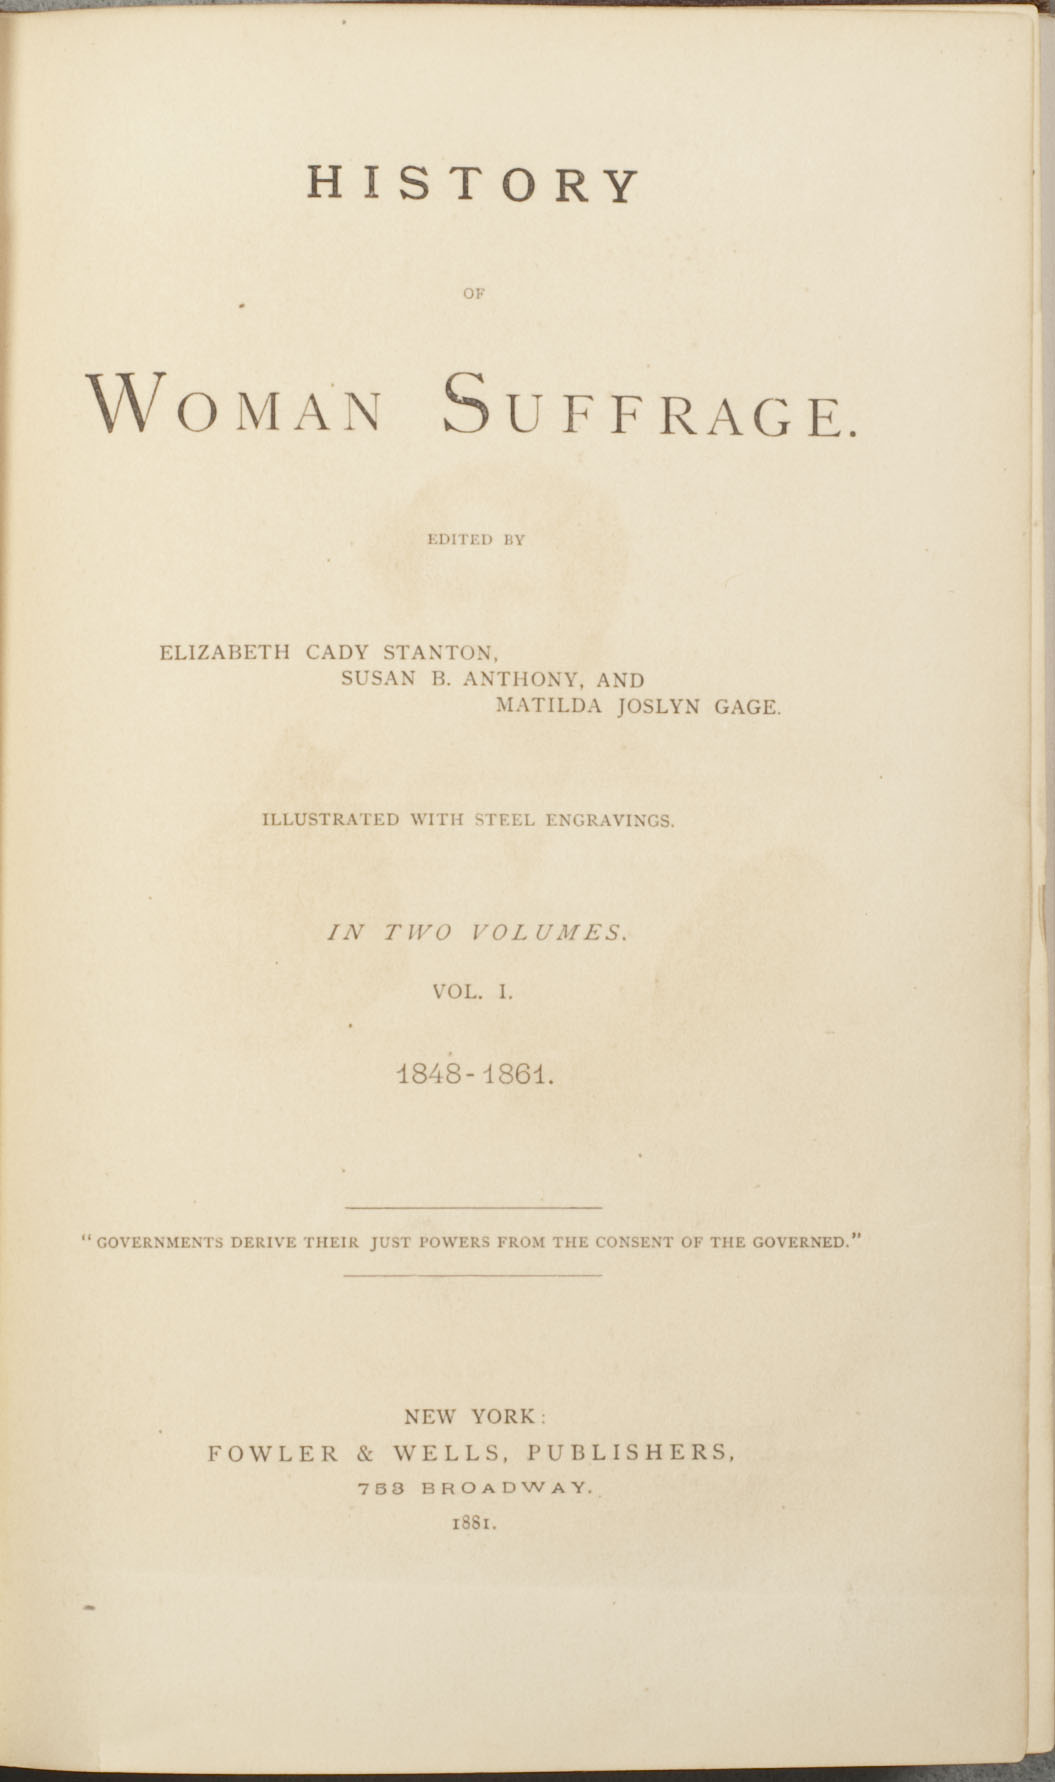 Title page of volume 1